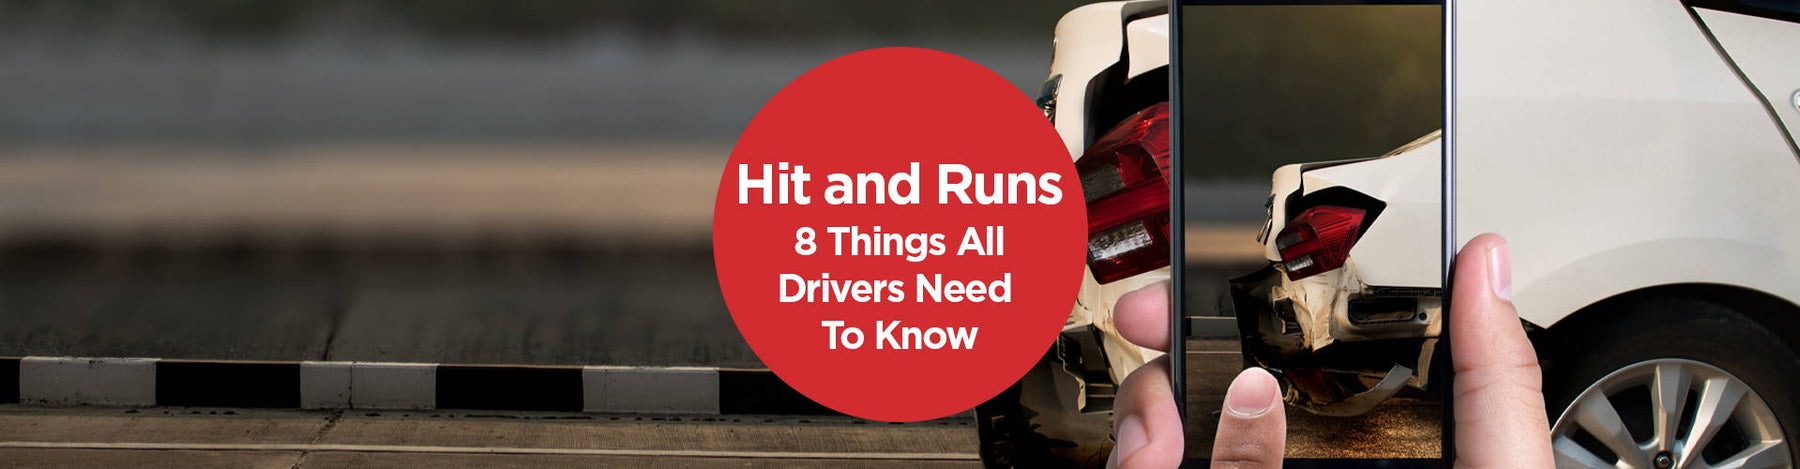 Hit and Runs - 8 Things All Drivers Need To Know